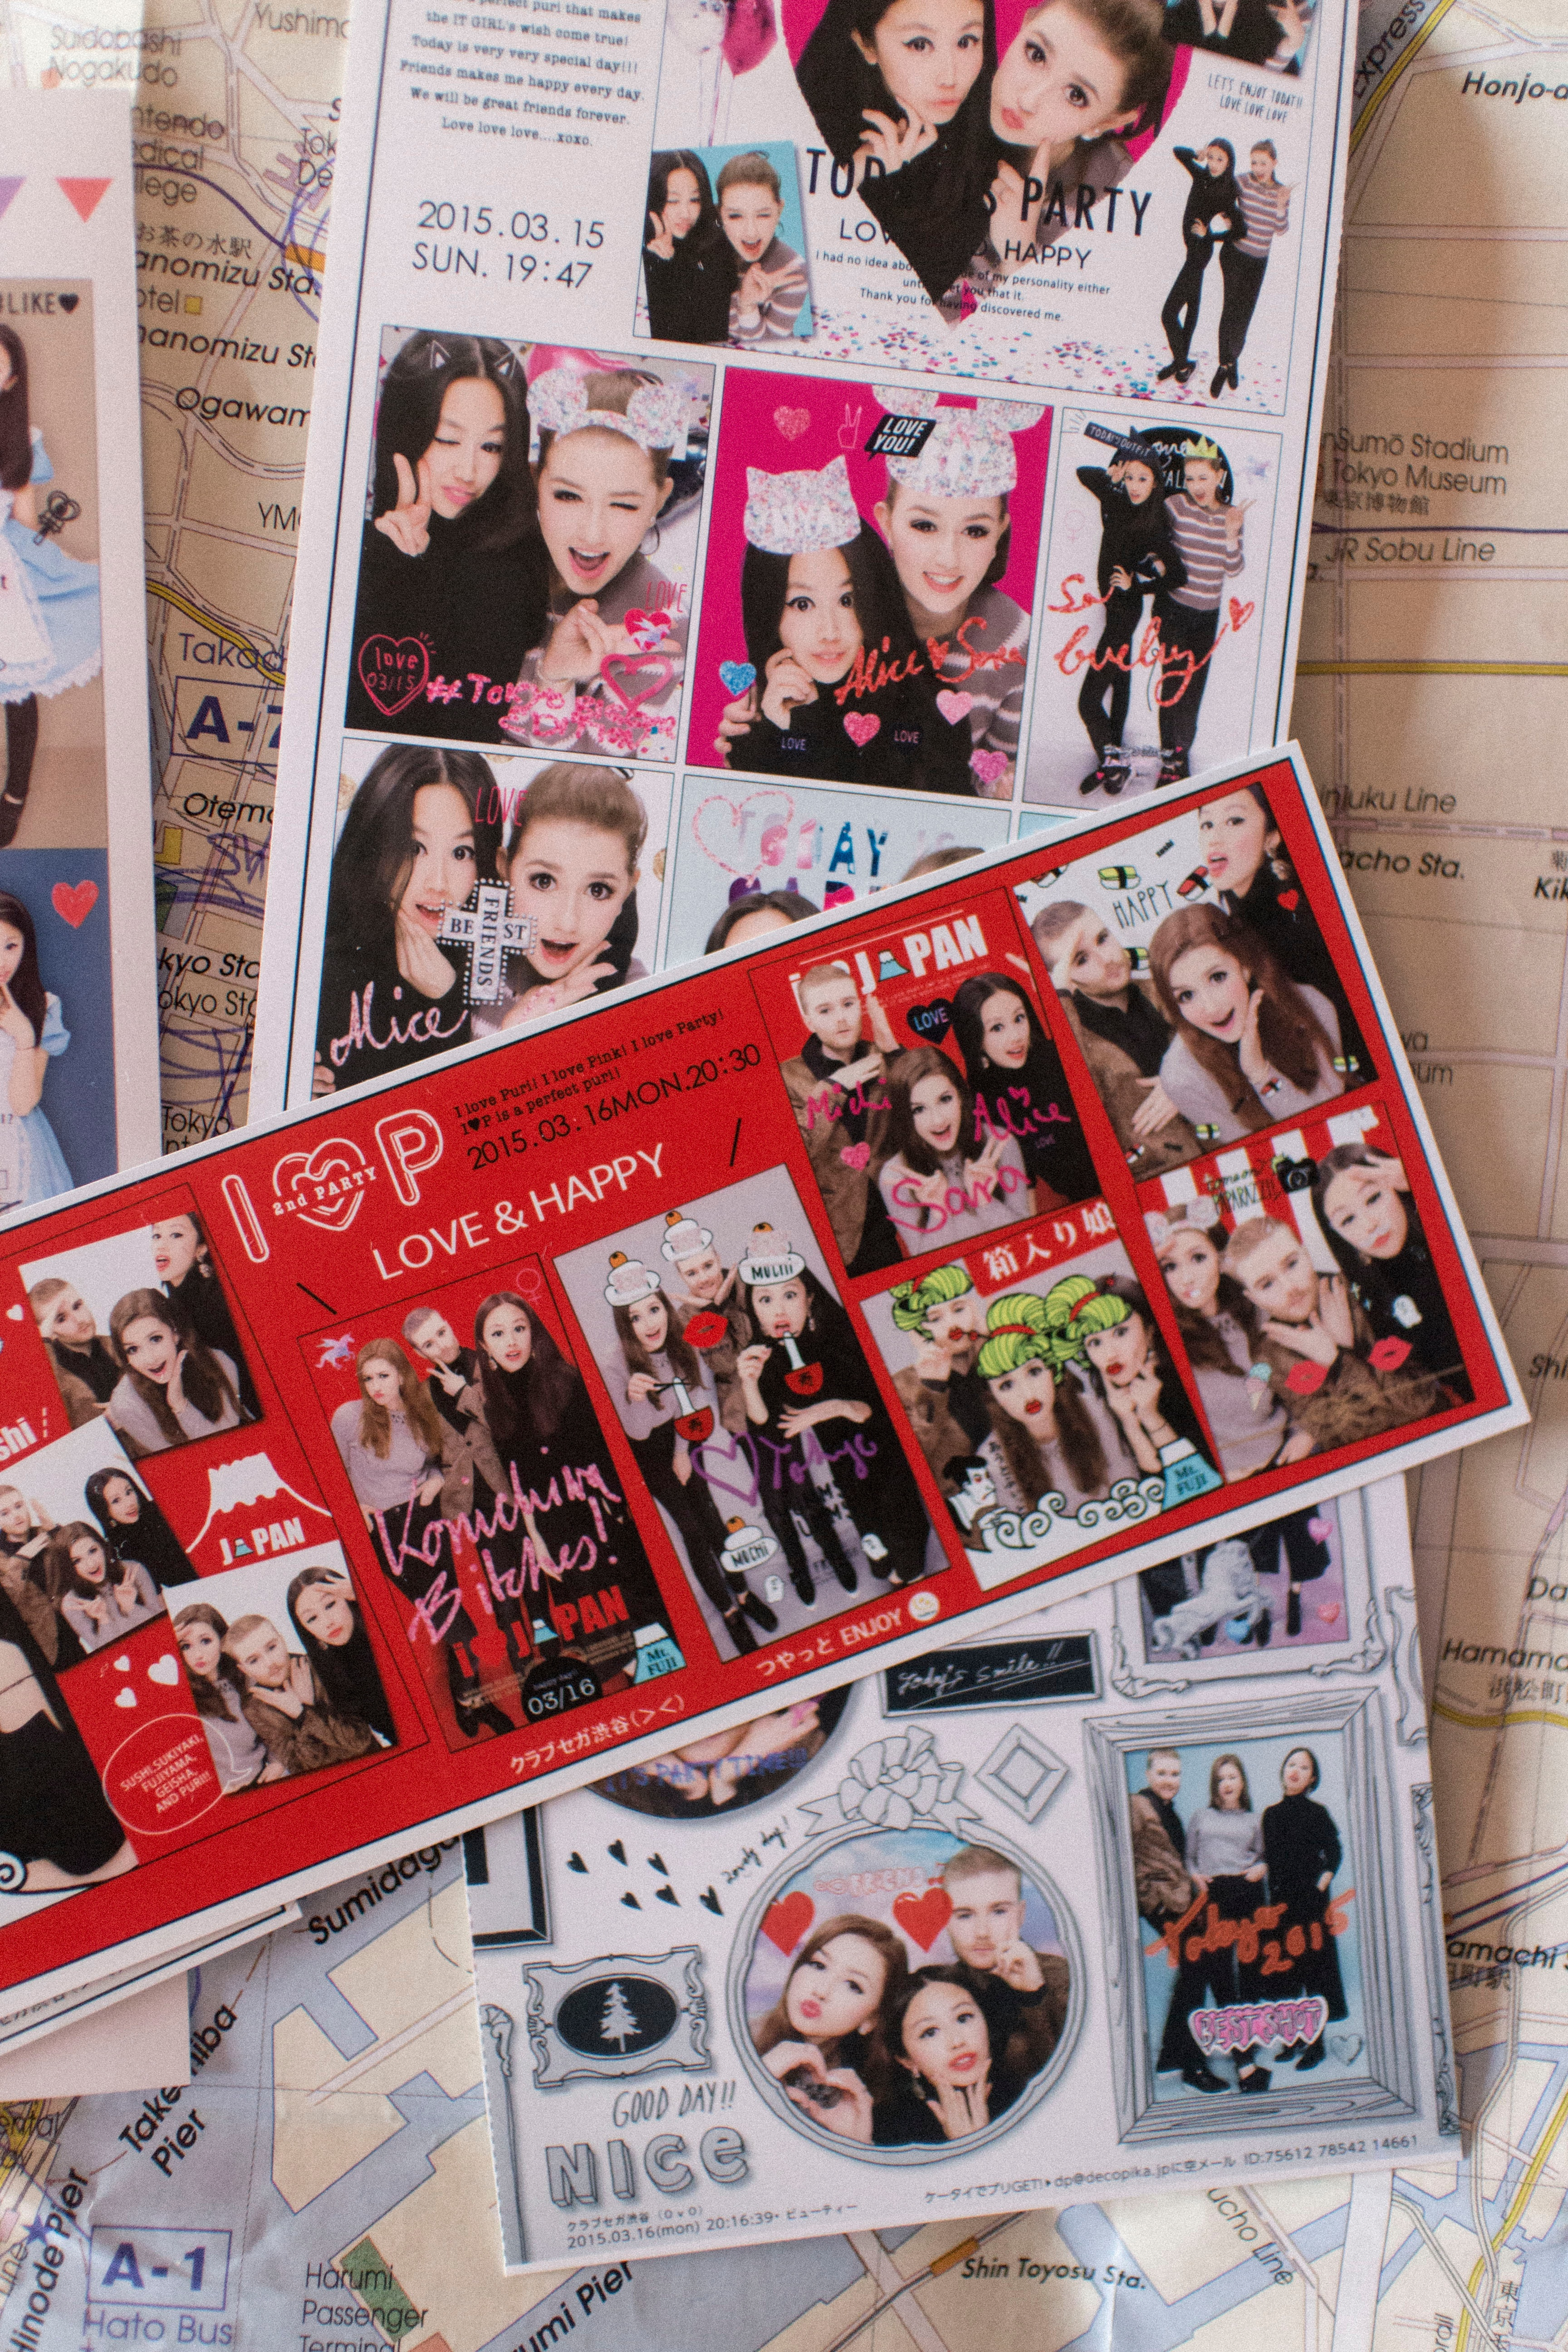 IHEARTALICE.DE – Fashion & Travel-Blog by Alice M. Huynh from Berlin/Germany: Tokyo, Japan Travel Diary – Purikura / Japanese Photobooth Machine - the best souvenir from Japan